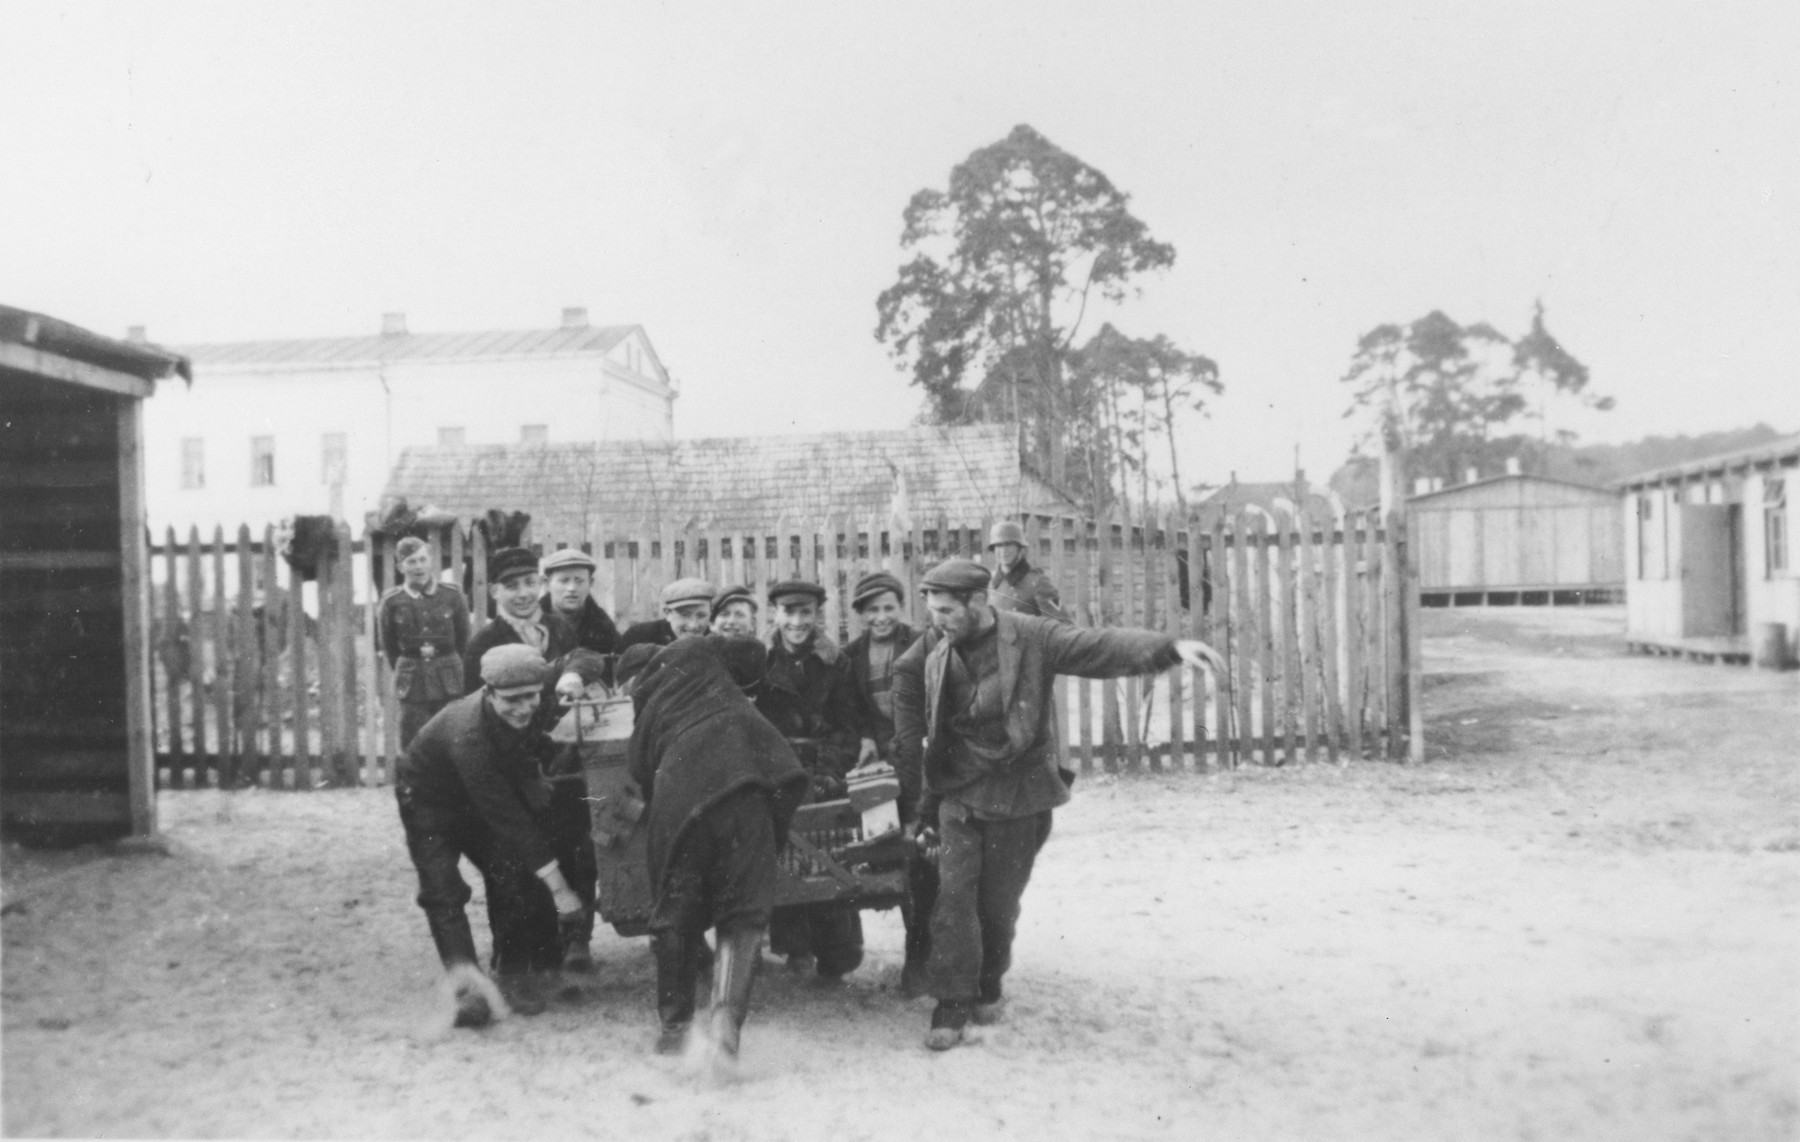 German soldiers supervise Jewish youth as they carry a heavy piece of either machinery or furniture.